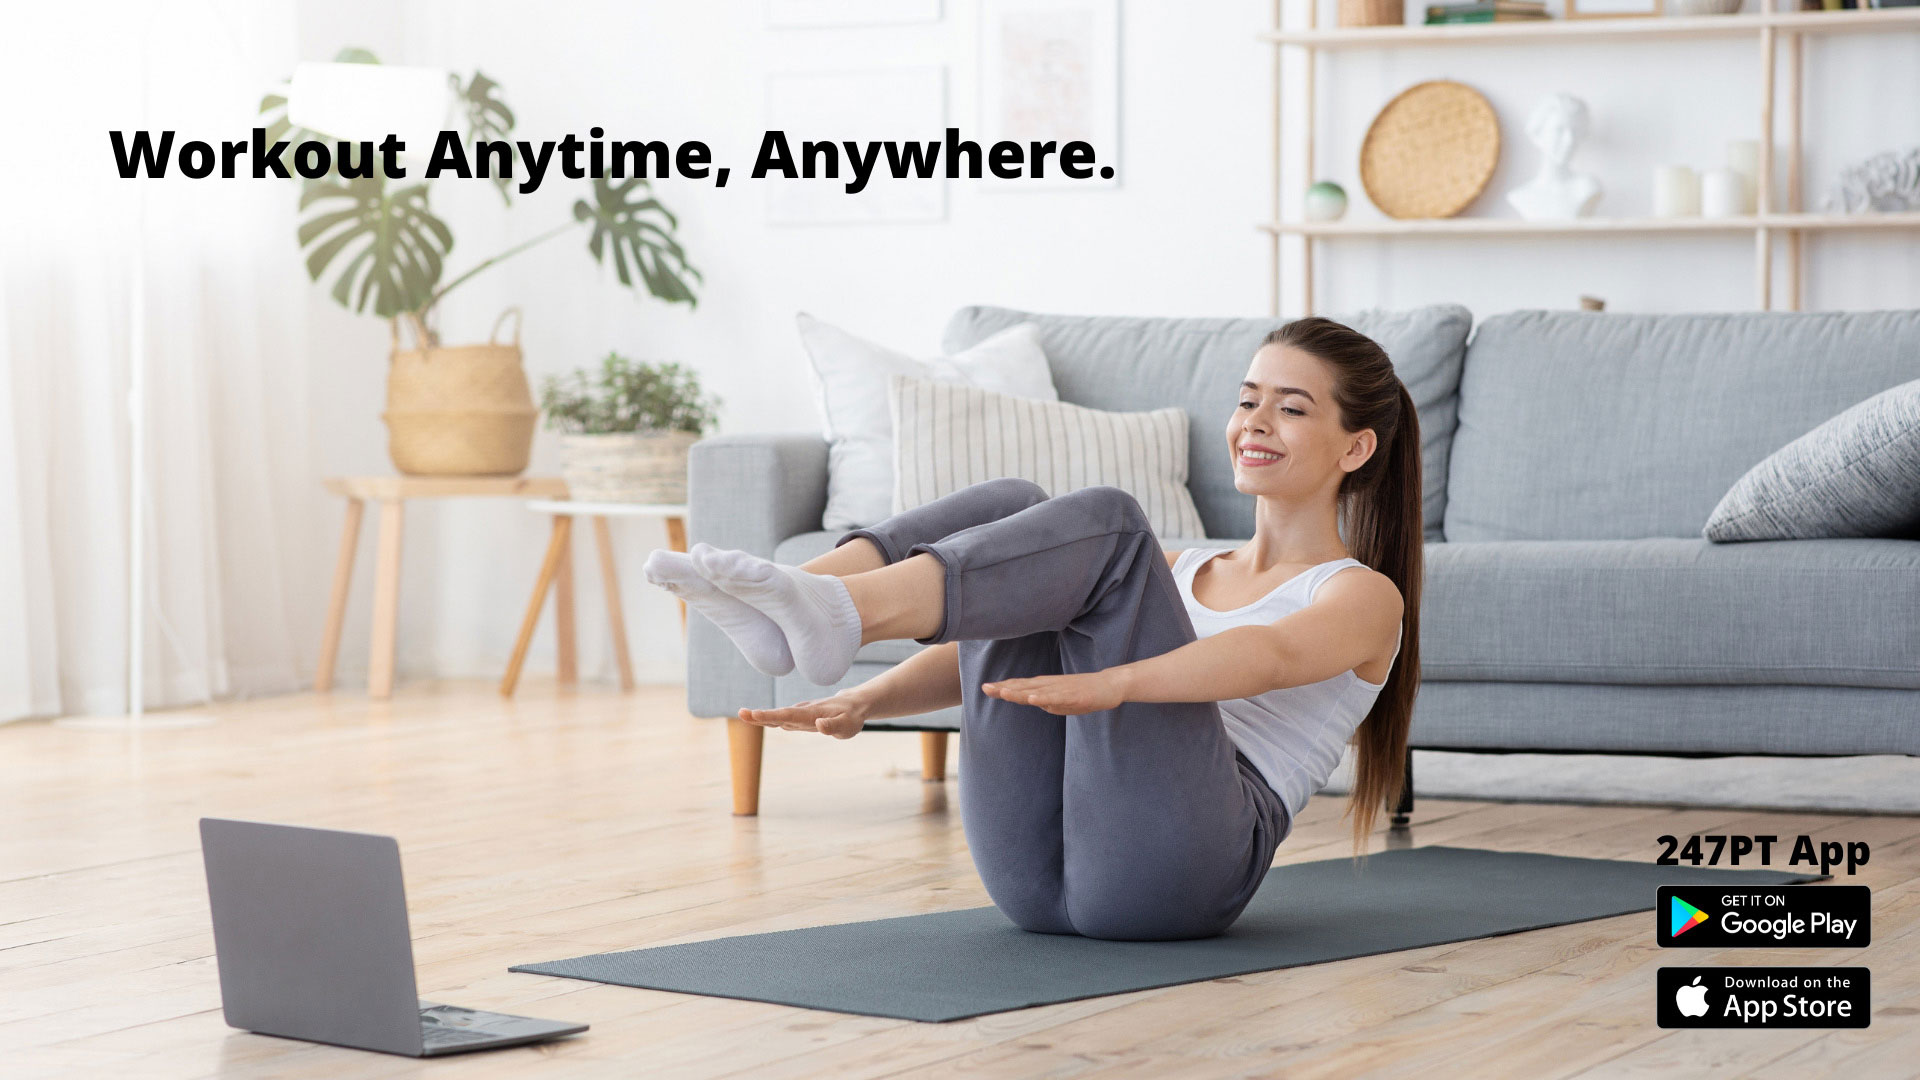 Workout-Anytime-Anywhere-2-2.jpg